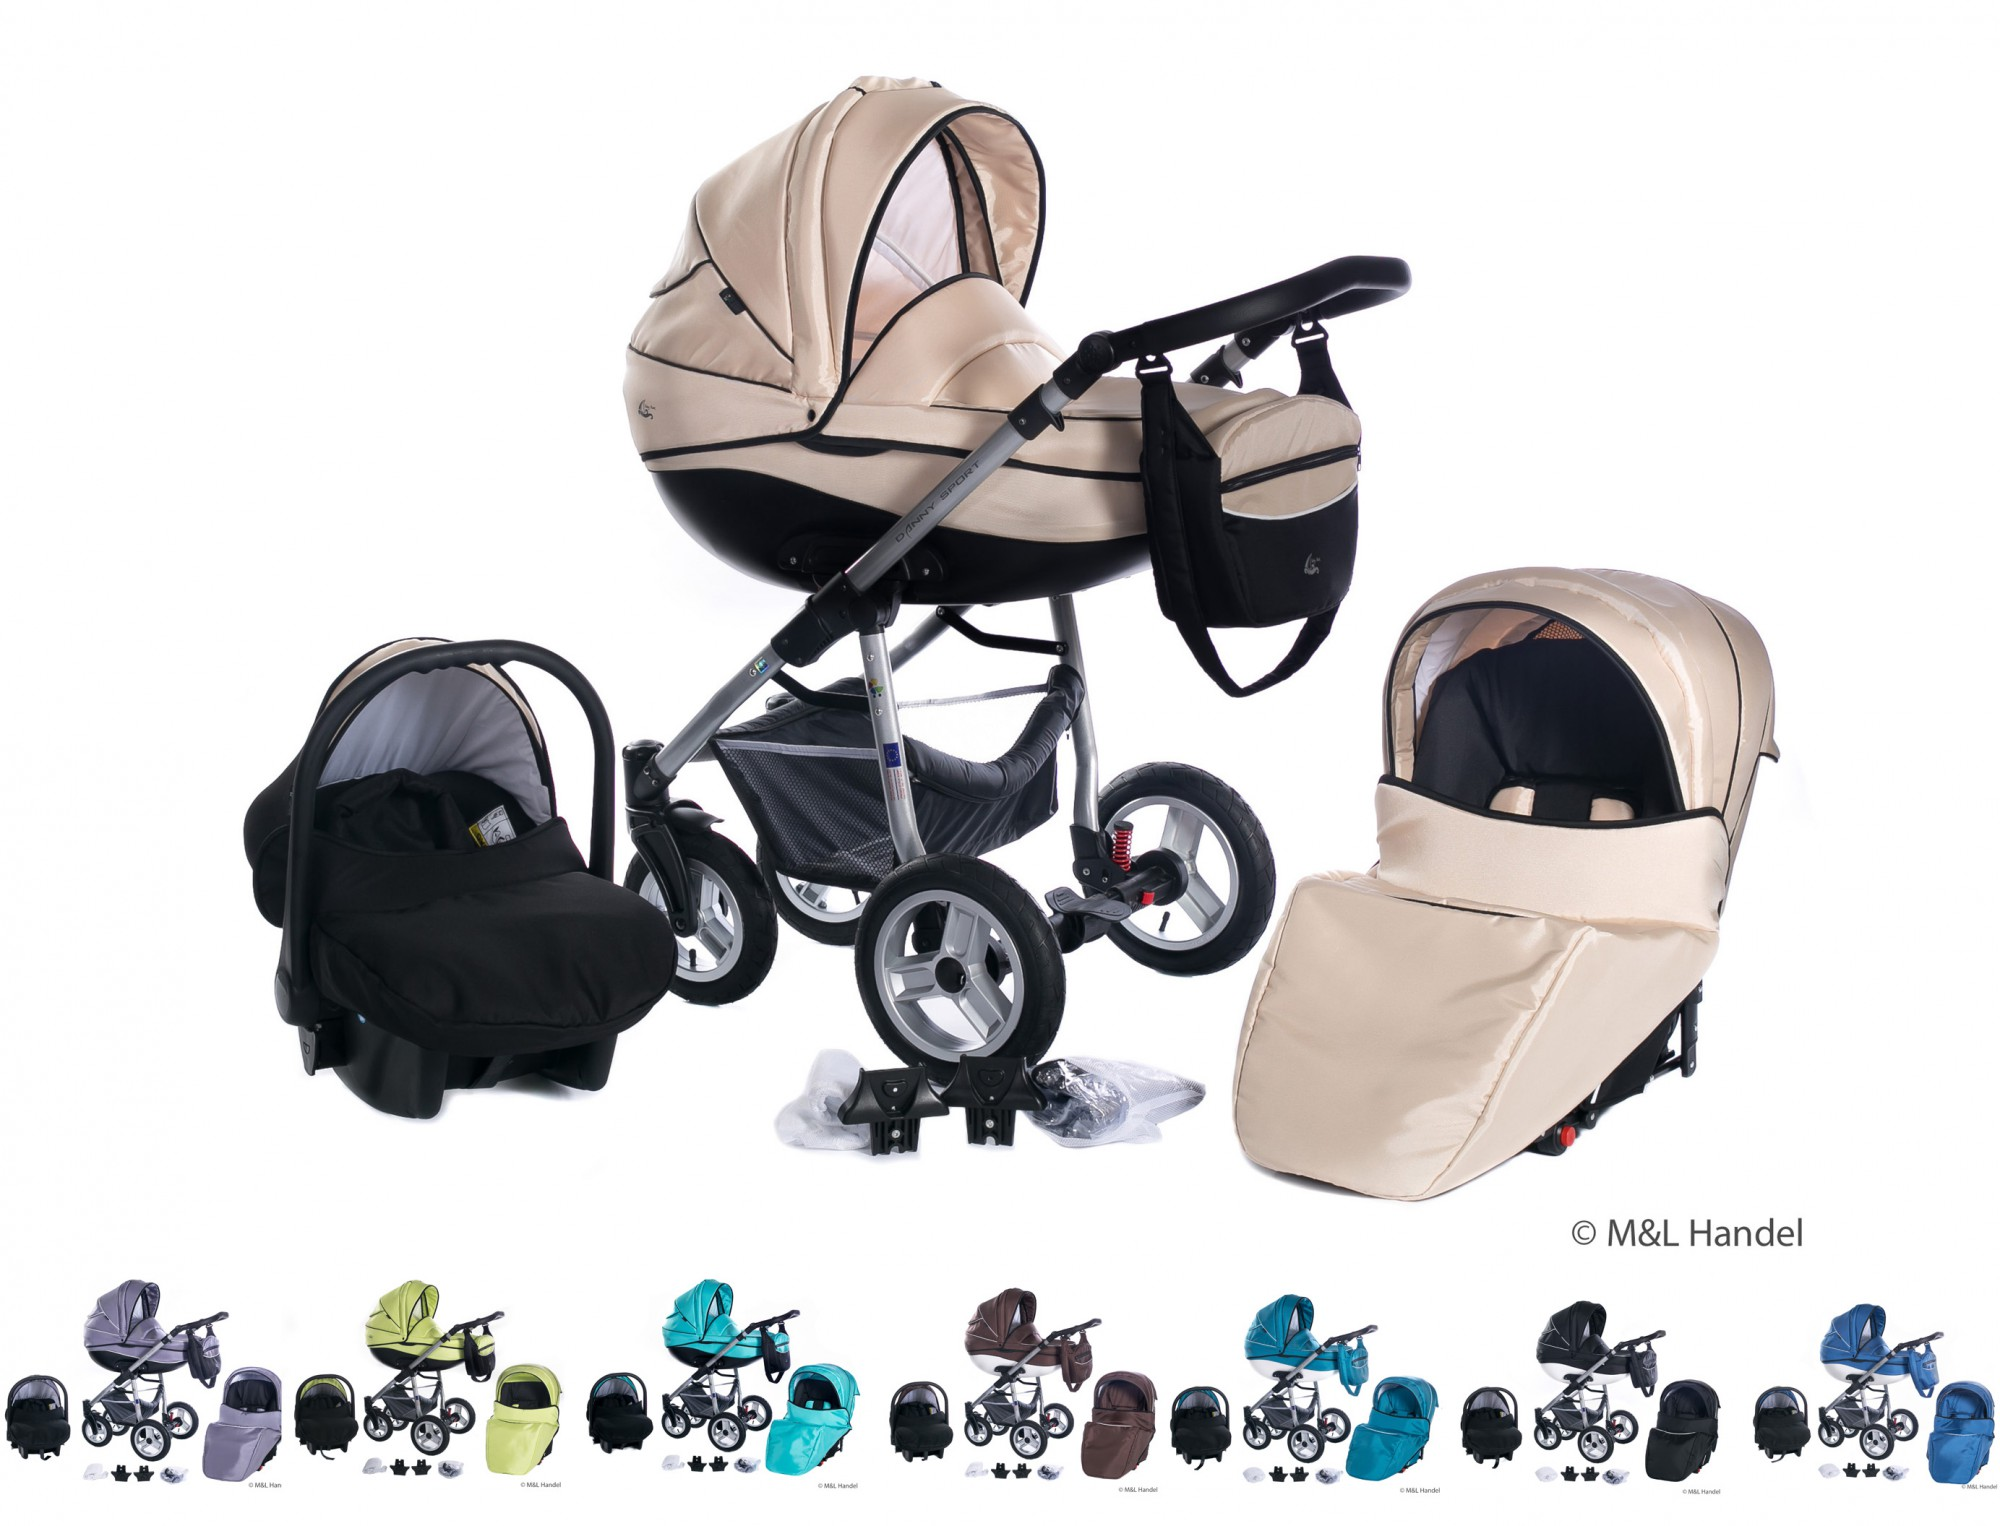 kombi kinderwagen baby boat 3in1 mit babyschale isofix. Black Bedroom Furniture Sets. Home Design Ideas